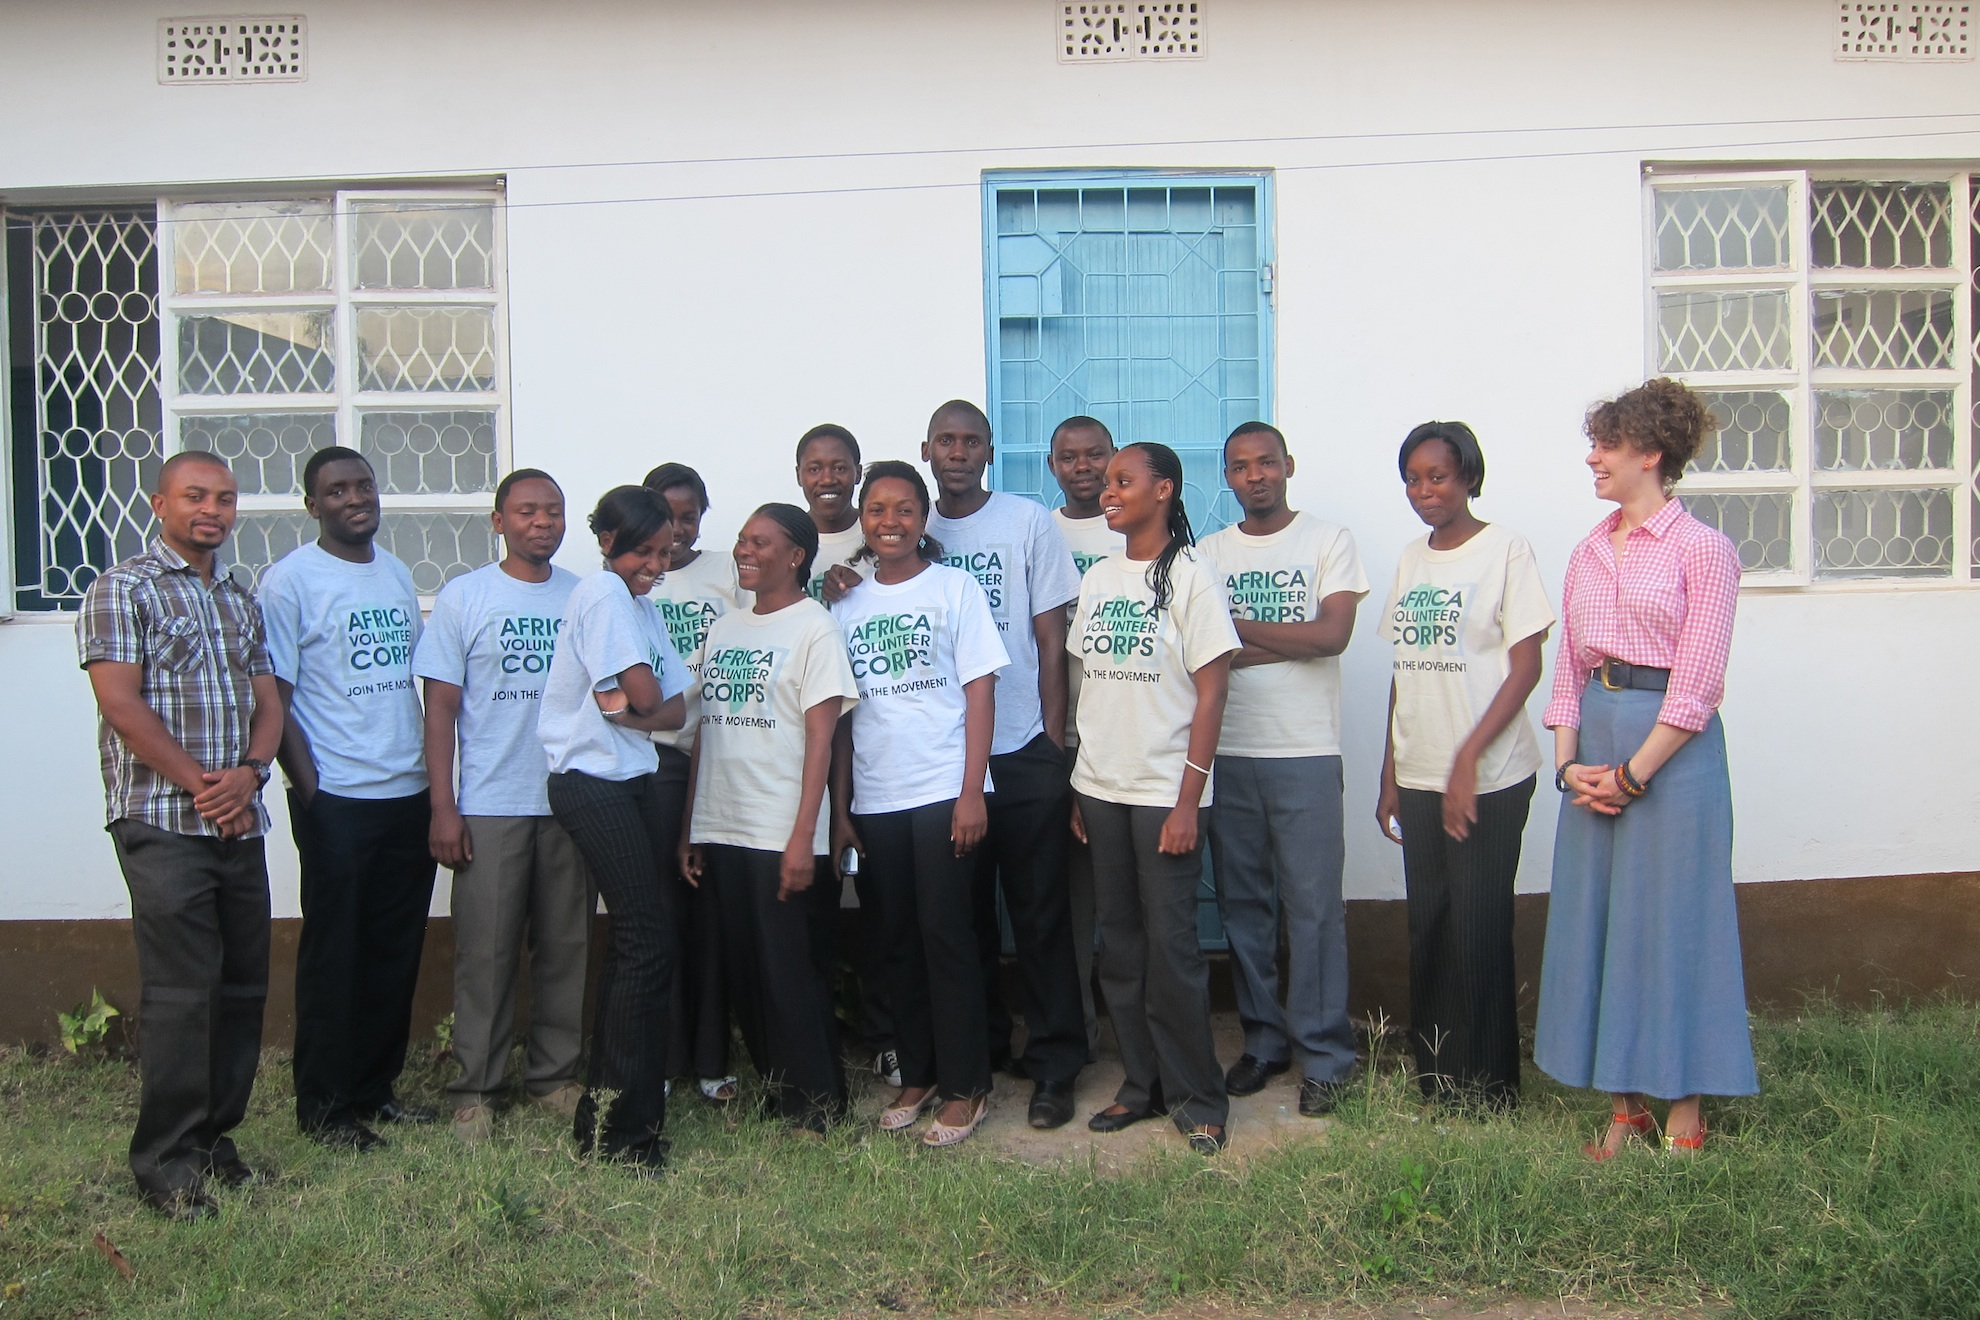 With the 2013 Volunteers